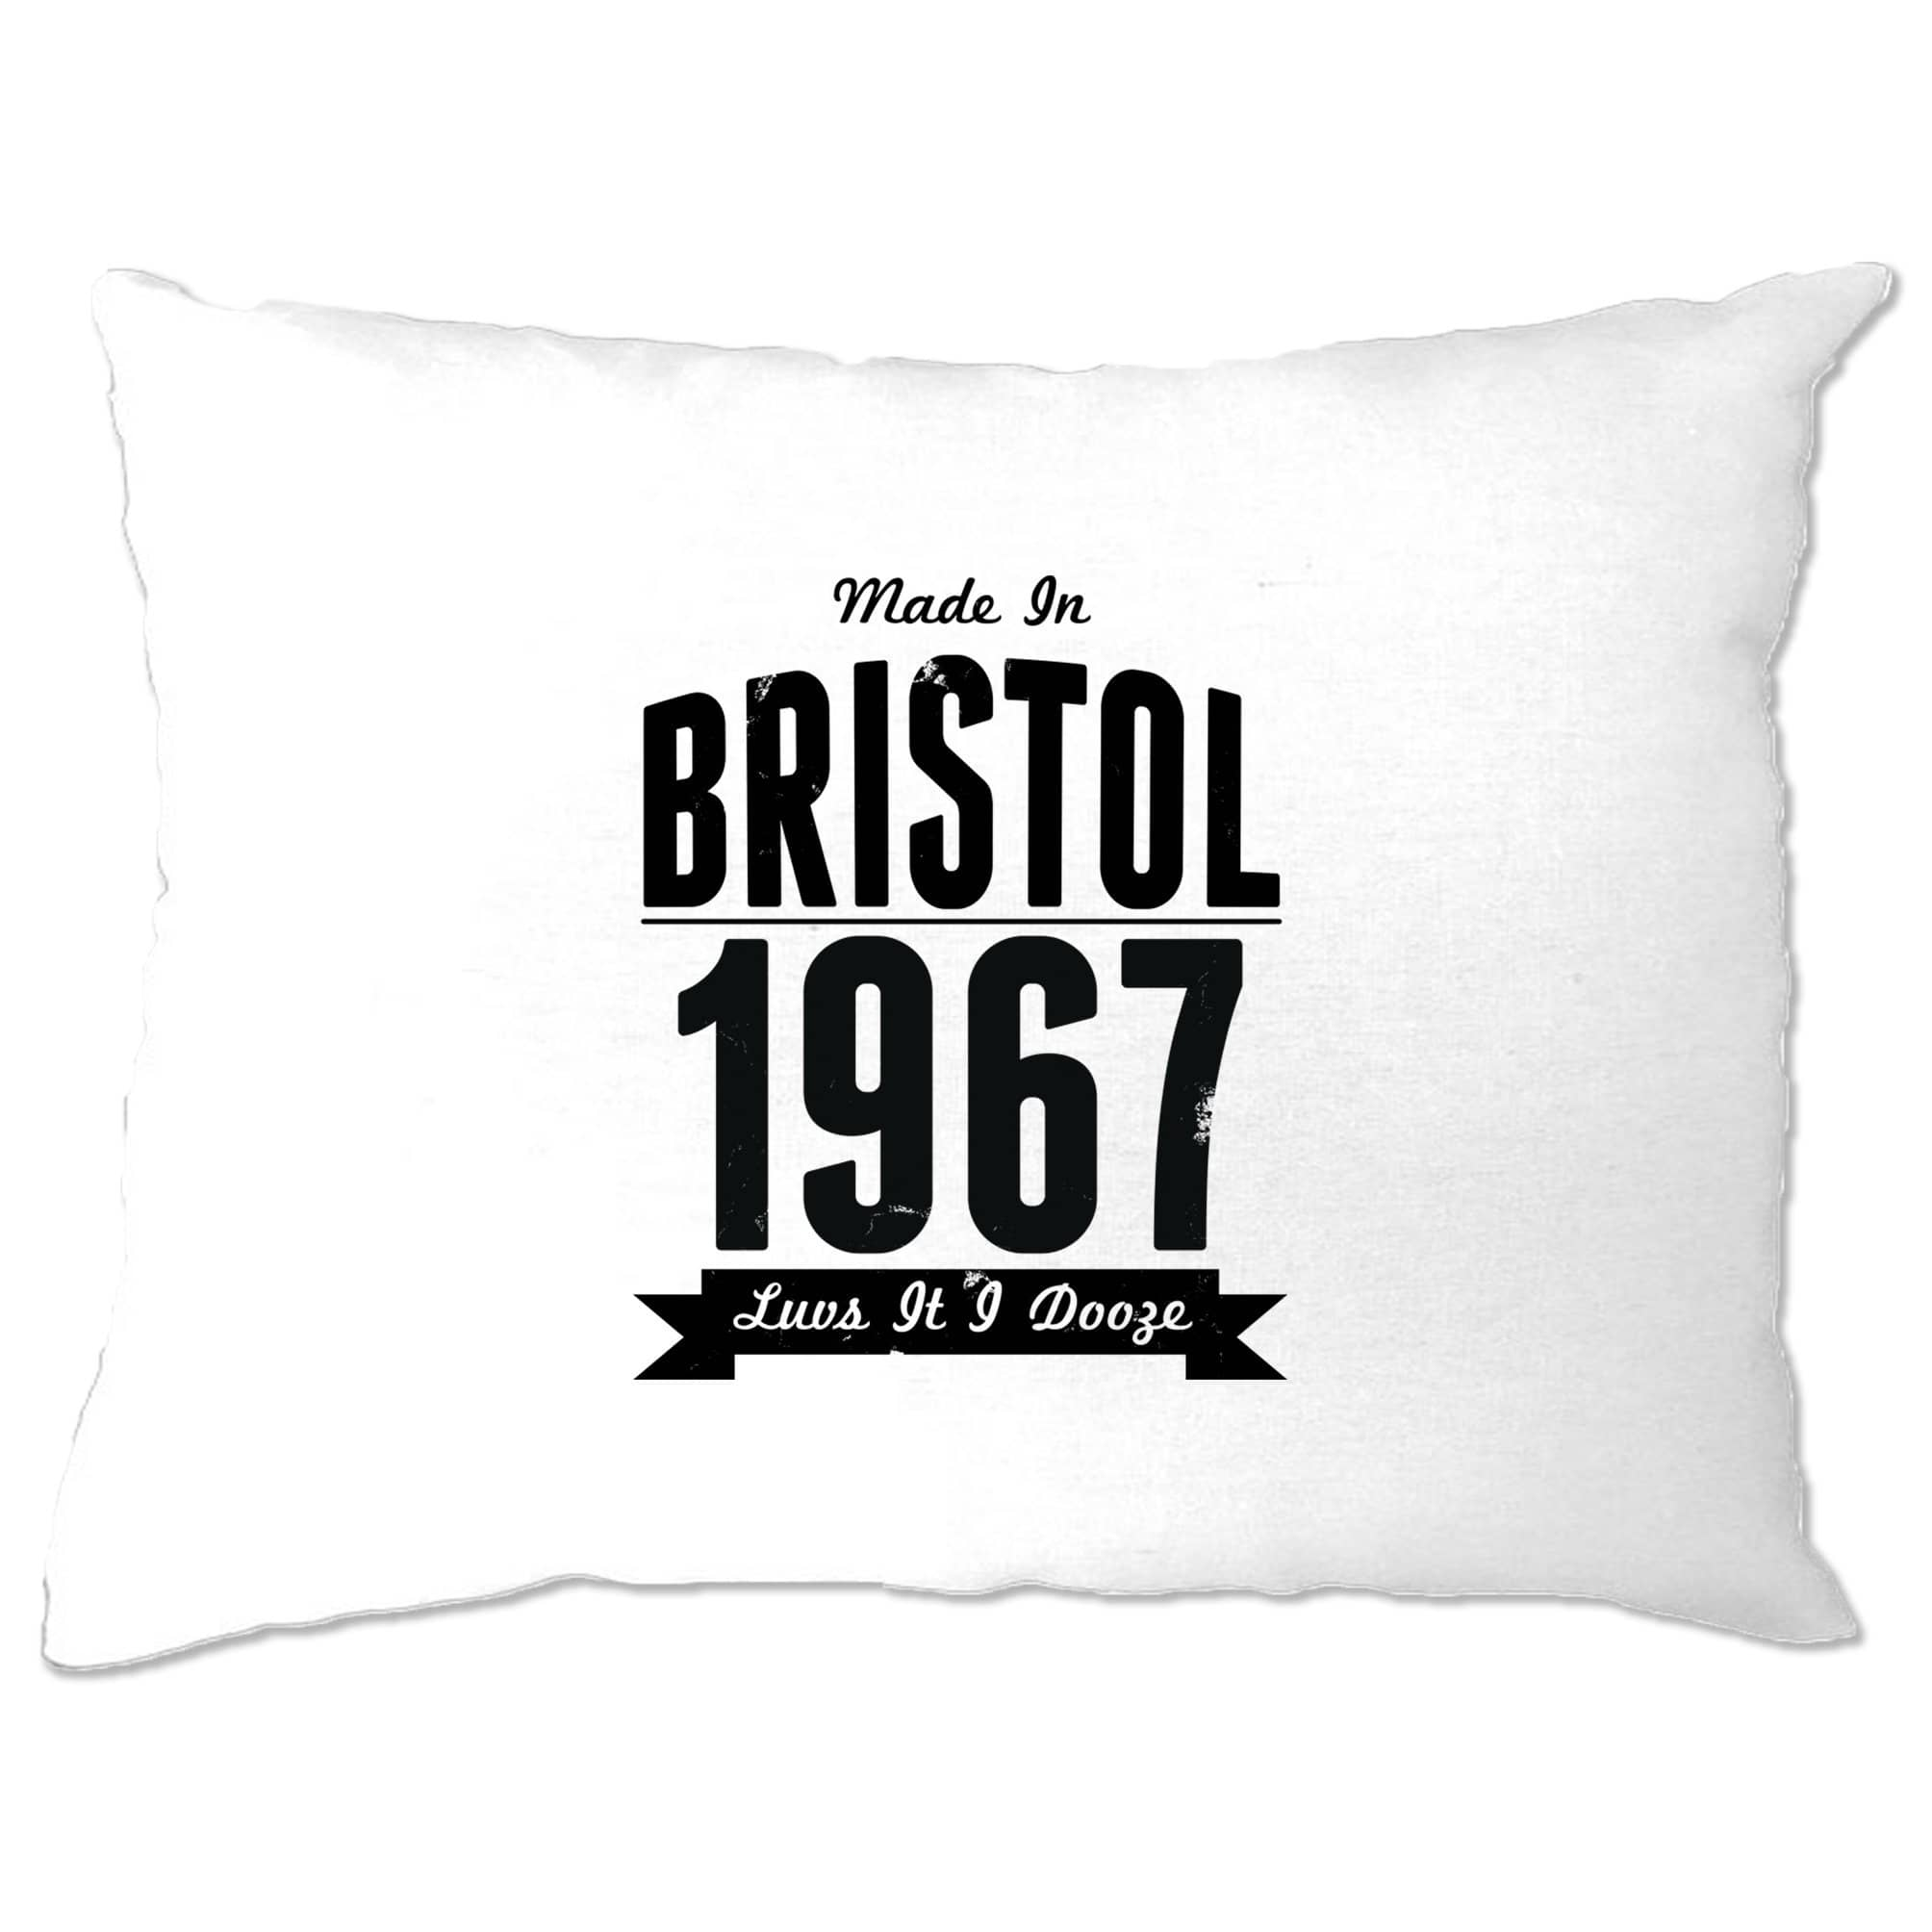 Birthday Pillow Case Made In Bristol, England 1967 Motto